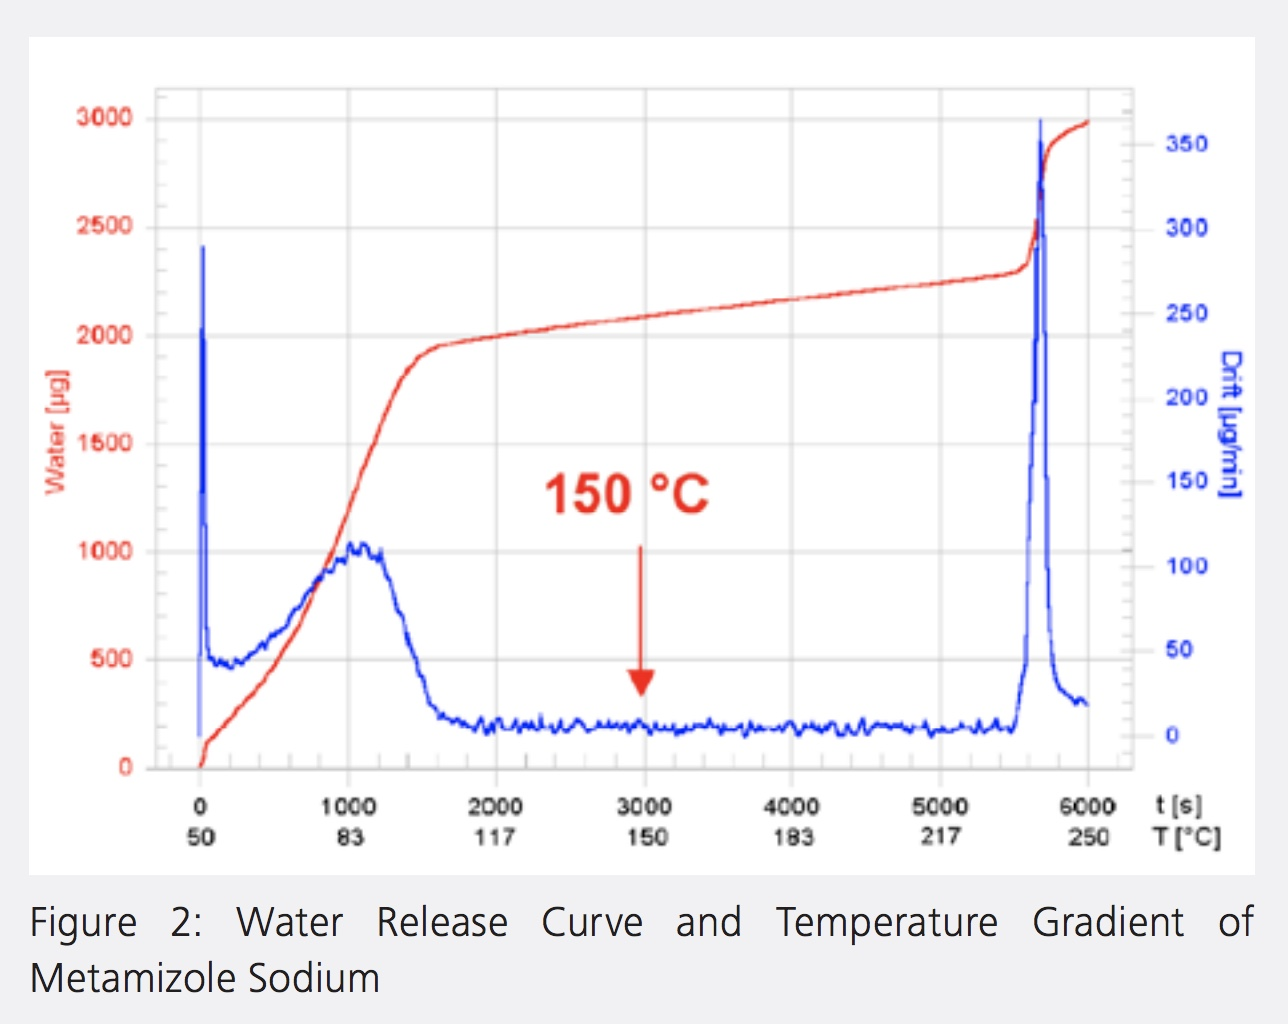 Pharmaebook_Ch3_Figure2 - Water Release Curve and Temperature Gradient of Metamizole Sodium